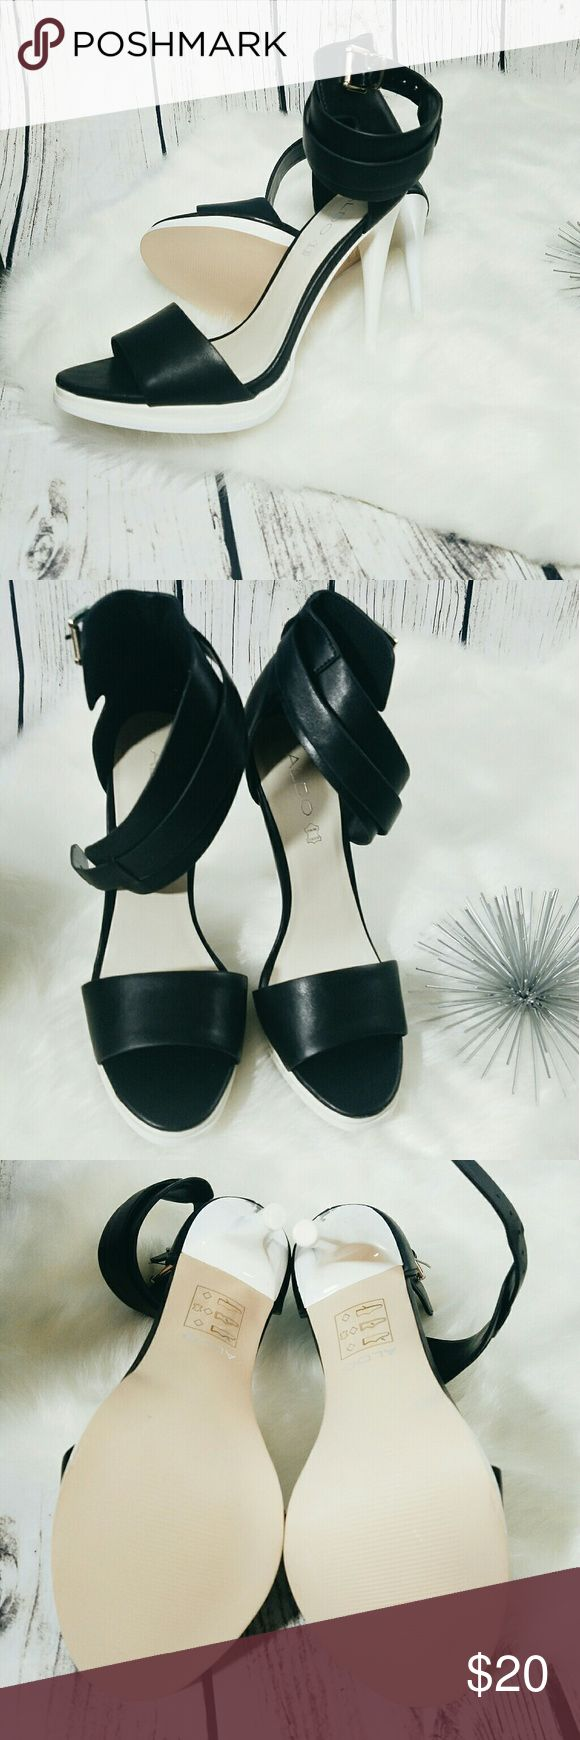 Black and and white strappy sandal from Aldo. This black and white shoe Sports an Ankle strap white heel and is really beautiful baby soft leather. Silver detailing. Brand new shoe never worn. This shoe will ship 2 to 4 days after your purchase. Thank you. Aldo Shoes Sandals